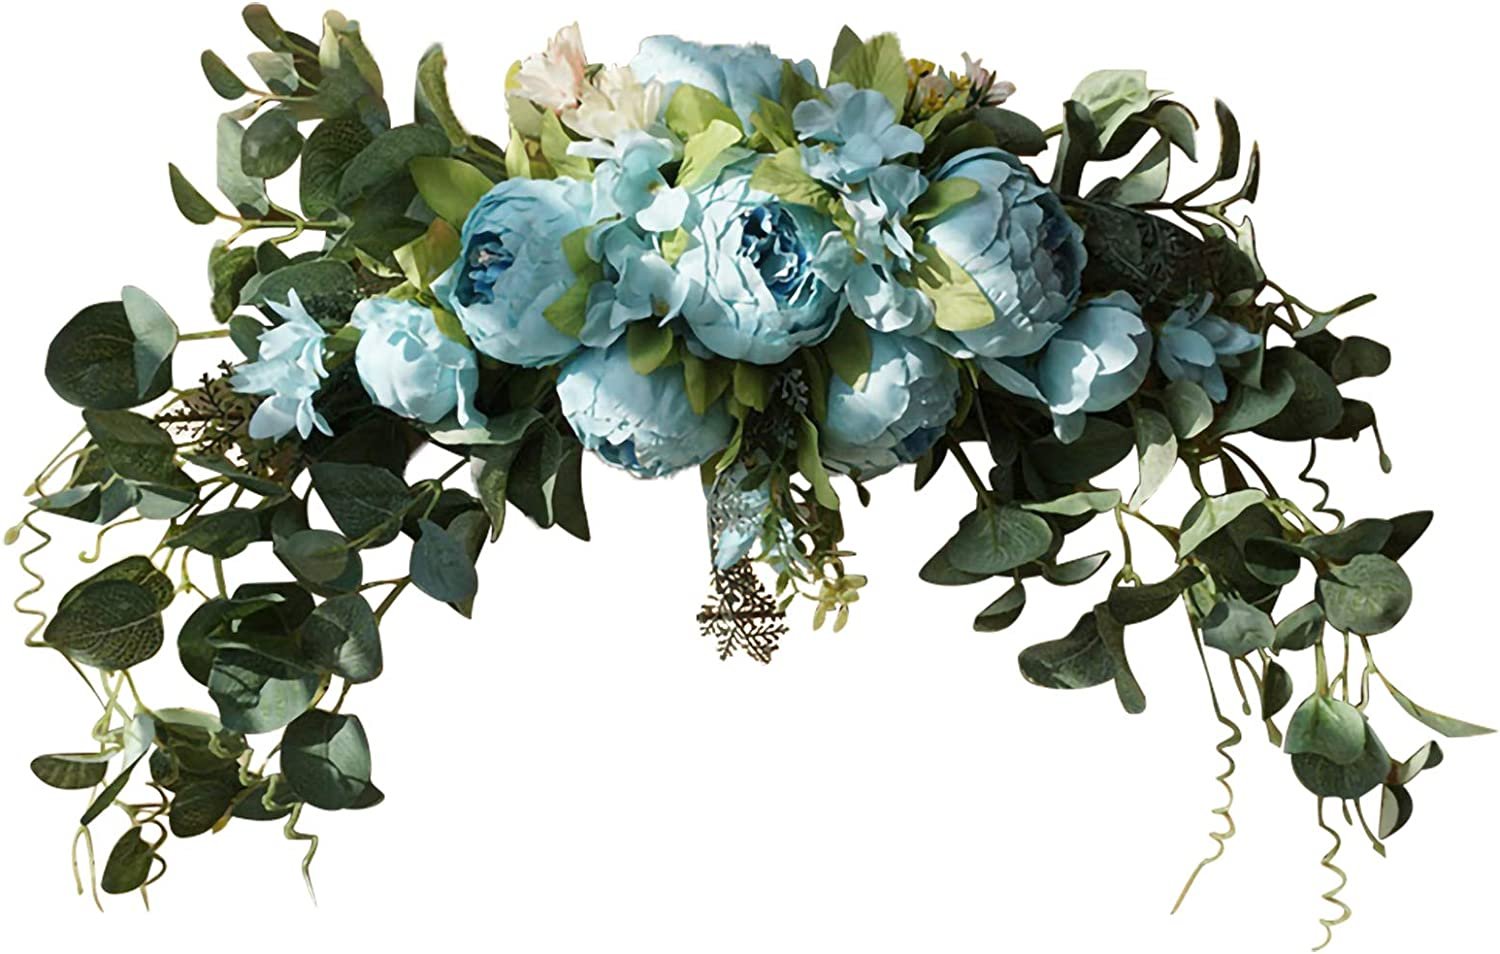 Aojie Wedding Arch Flowers,Artificial Peony Flower Swag,Decorative Swag with Poeny and Green Leaves,Rose Peony Swag Arch Wreath Centerpiece for Wedding Arch Front Door Wall Decor